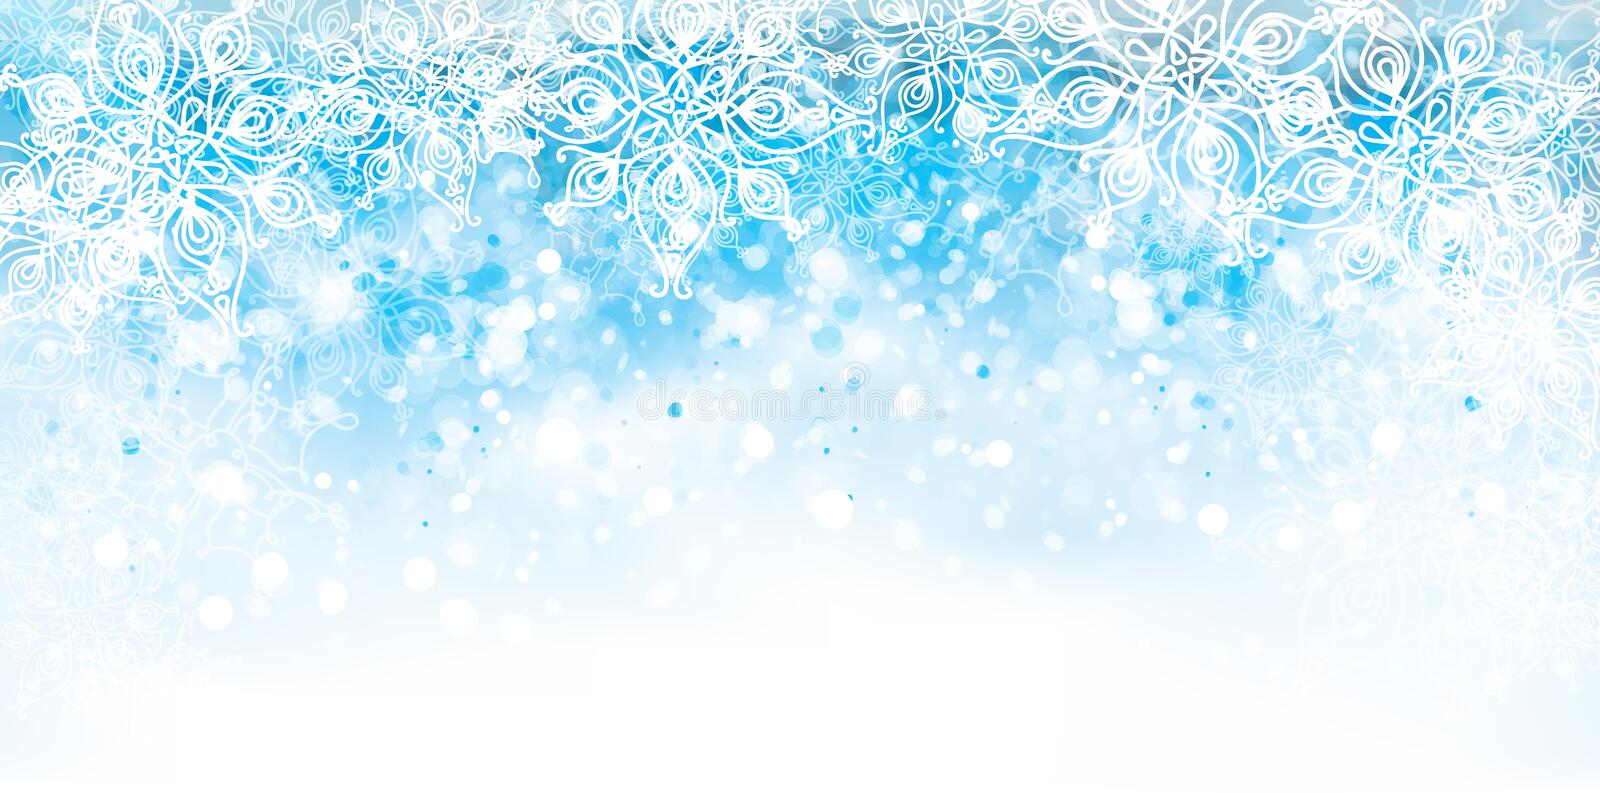 Vector abstract, blue, snowflake background. vector illustration